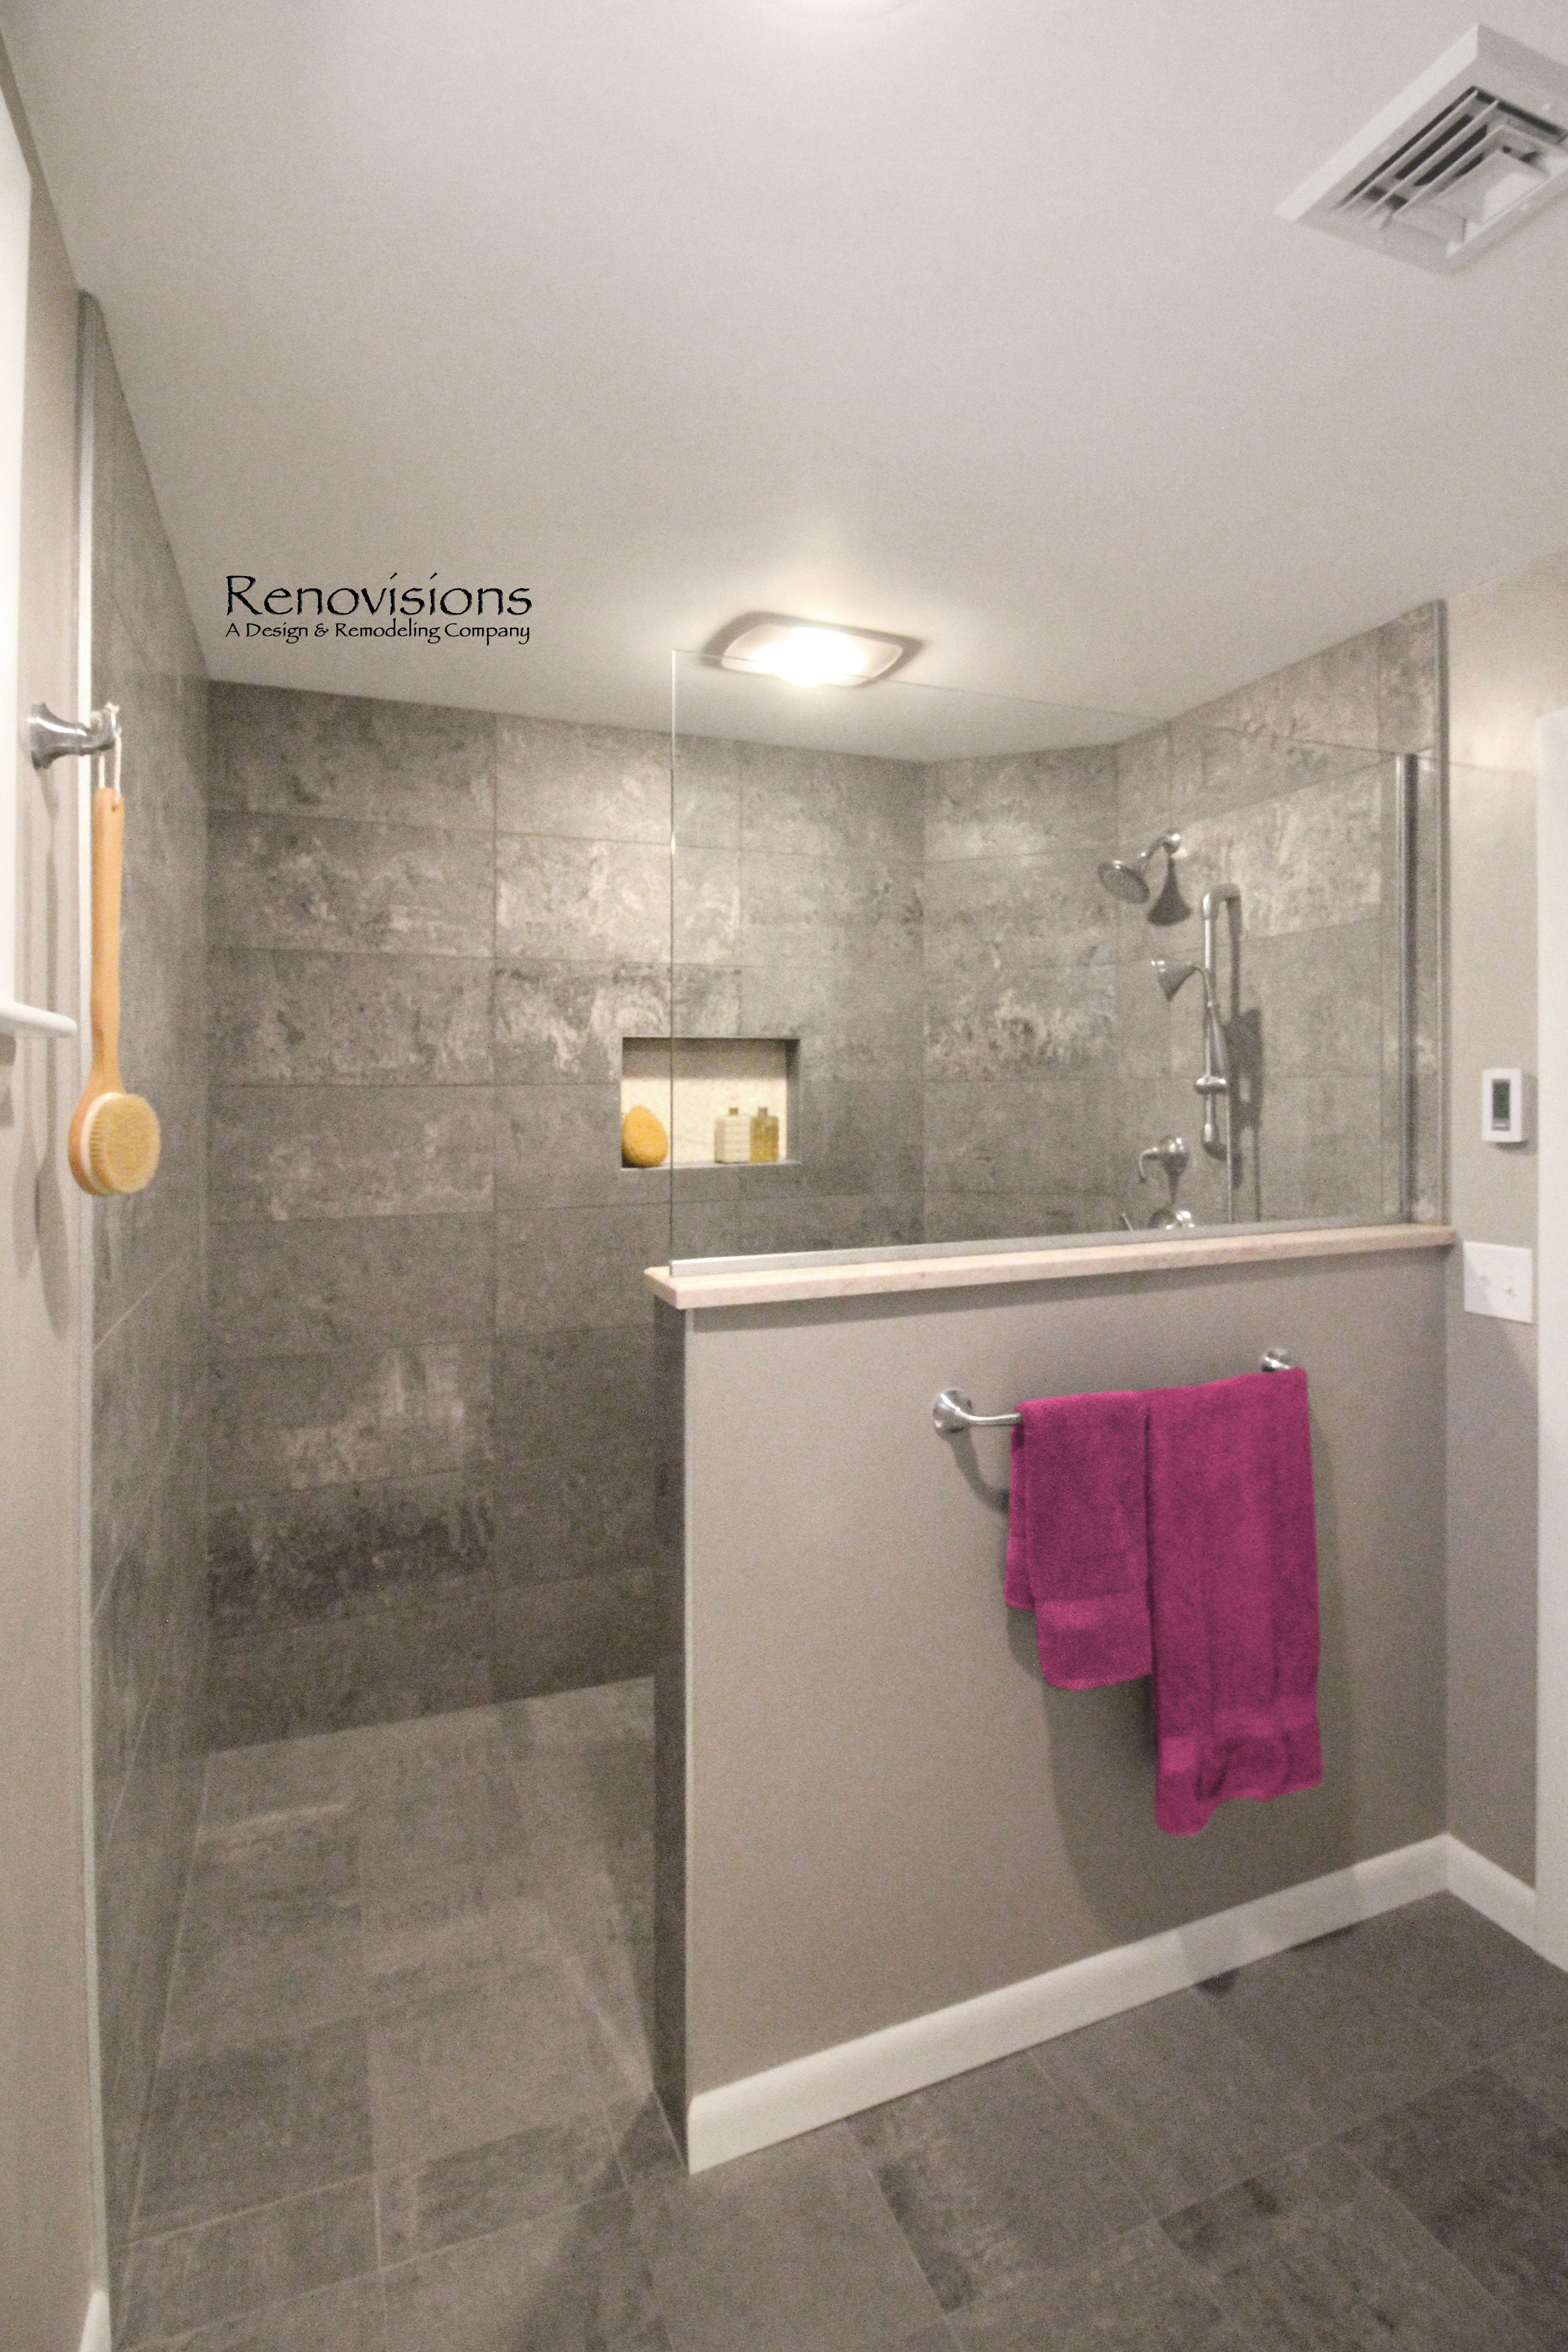 Image of: Basement Bathroom Ideas On Budget Low Ceiling And For Small Space Layjao